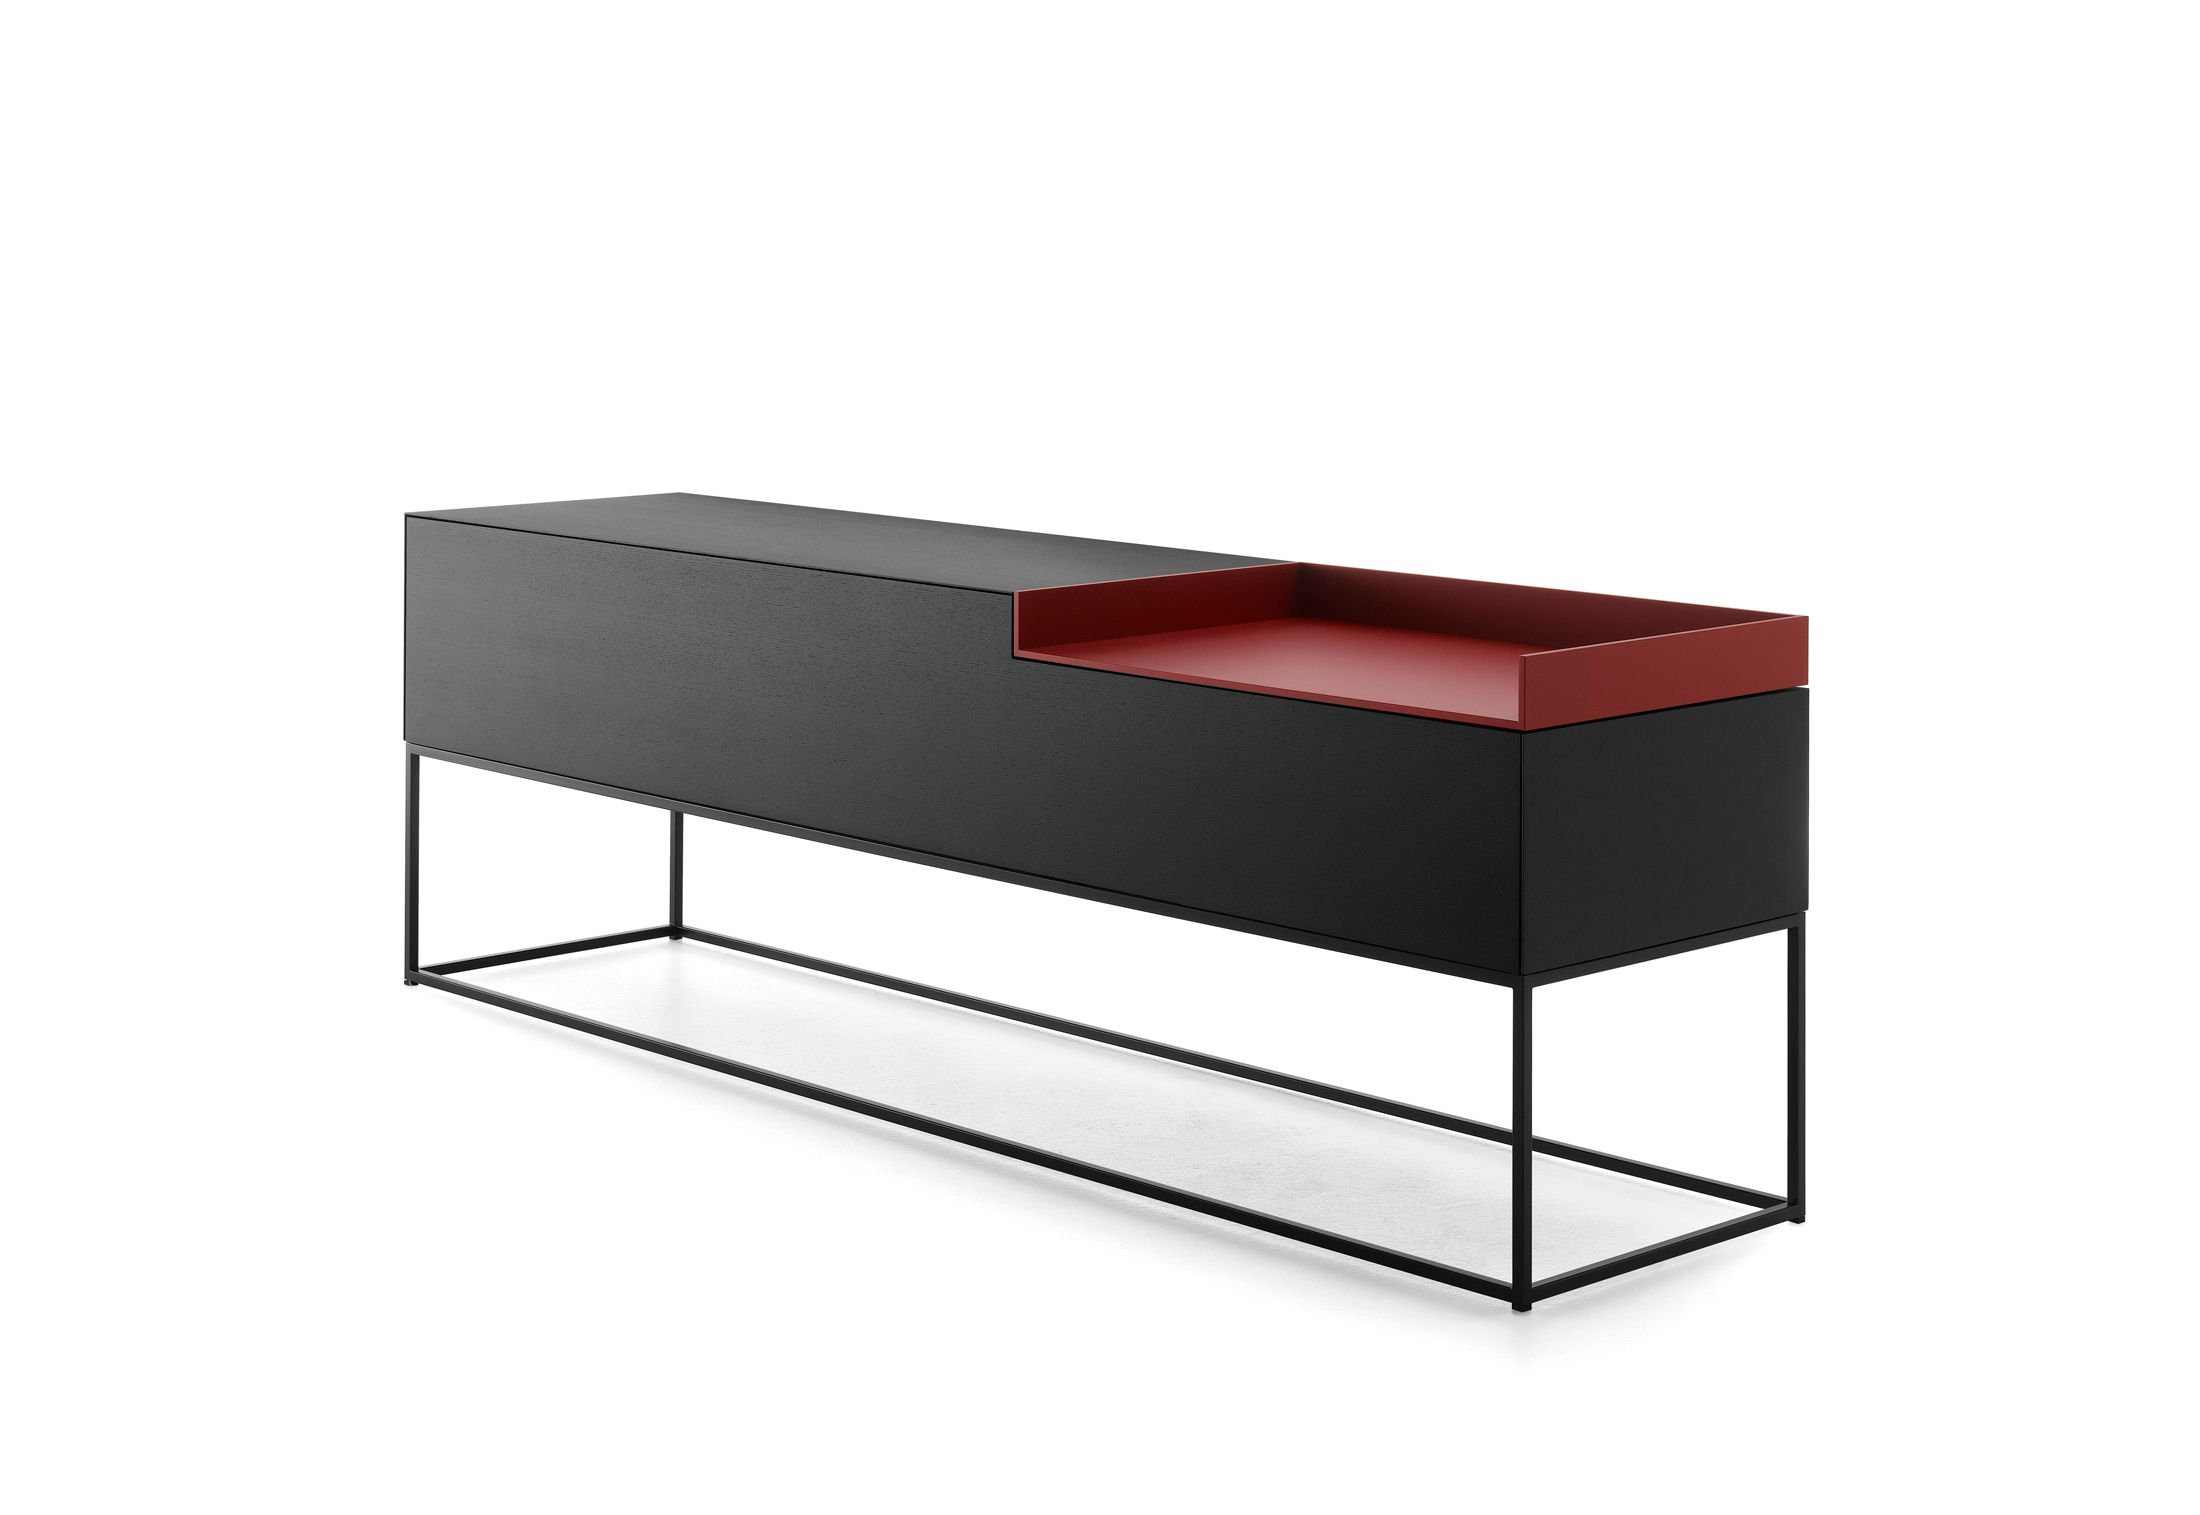 mdf italia inmotion sideboard consola pinterest dise o muebles aparadores y hogar. Black Bedroom Furniture Sets. Home Design Ideas